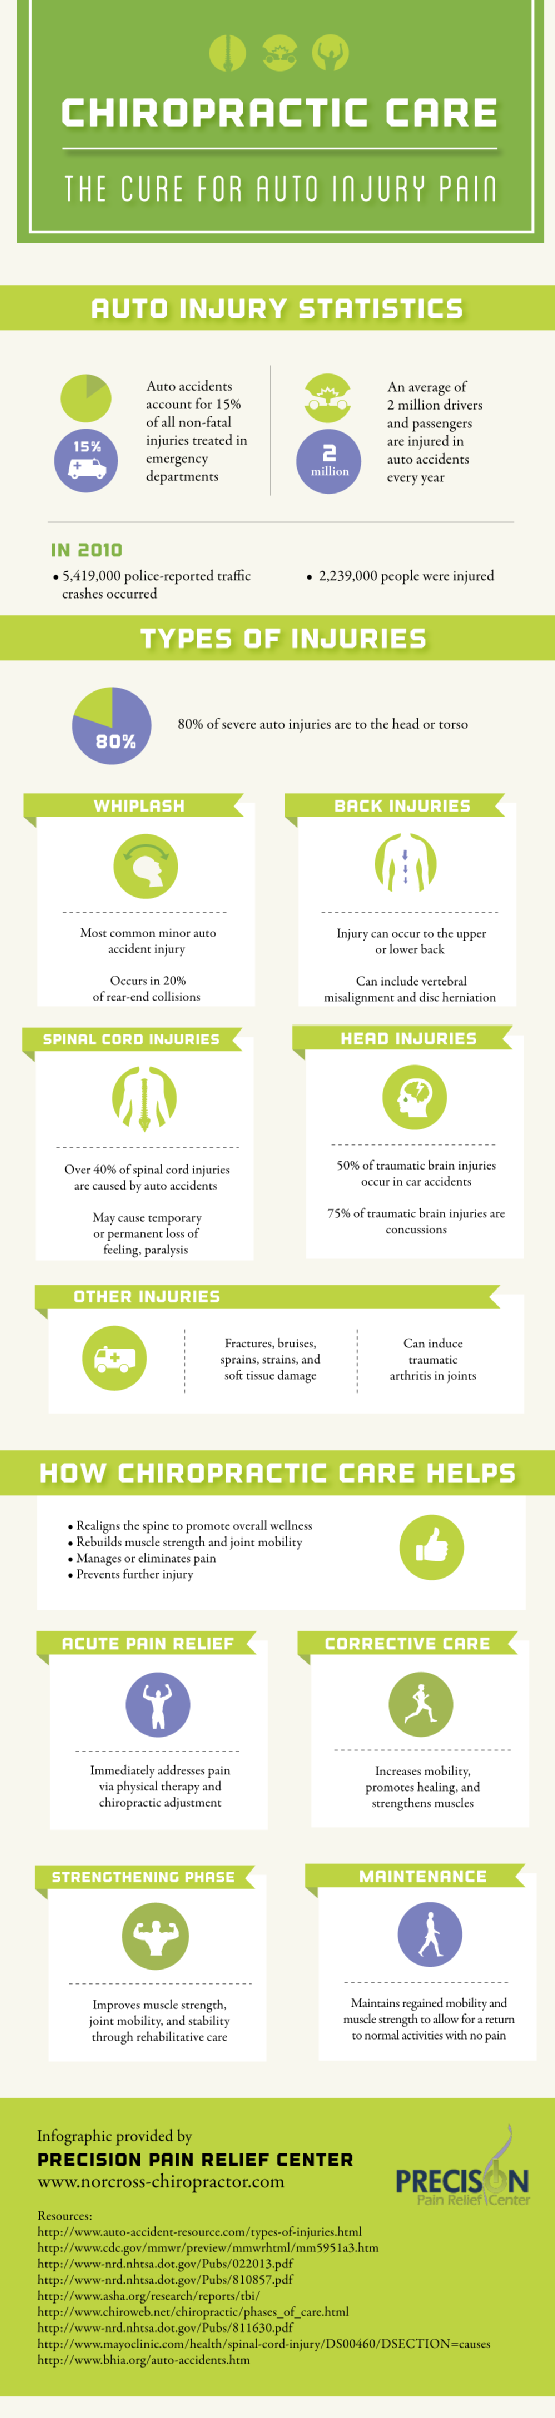 Chiropractic Care Facts